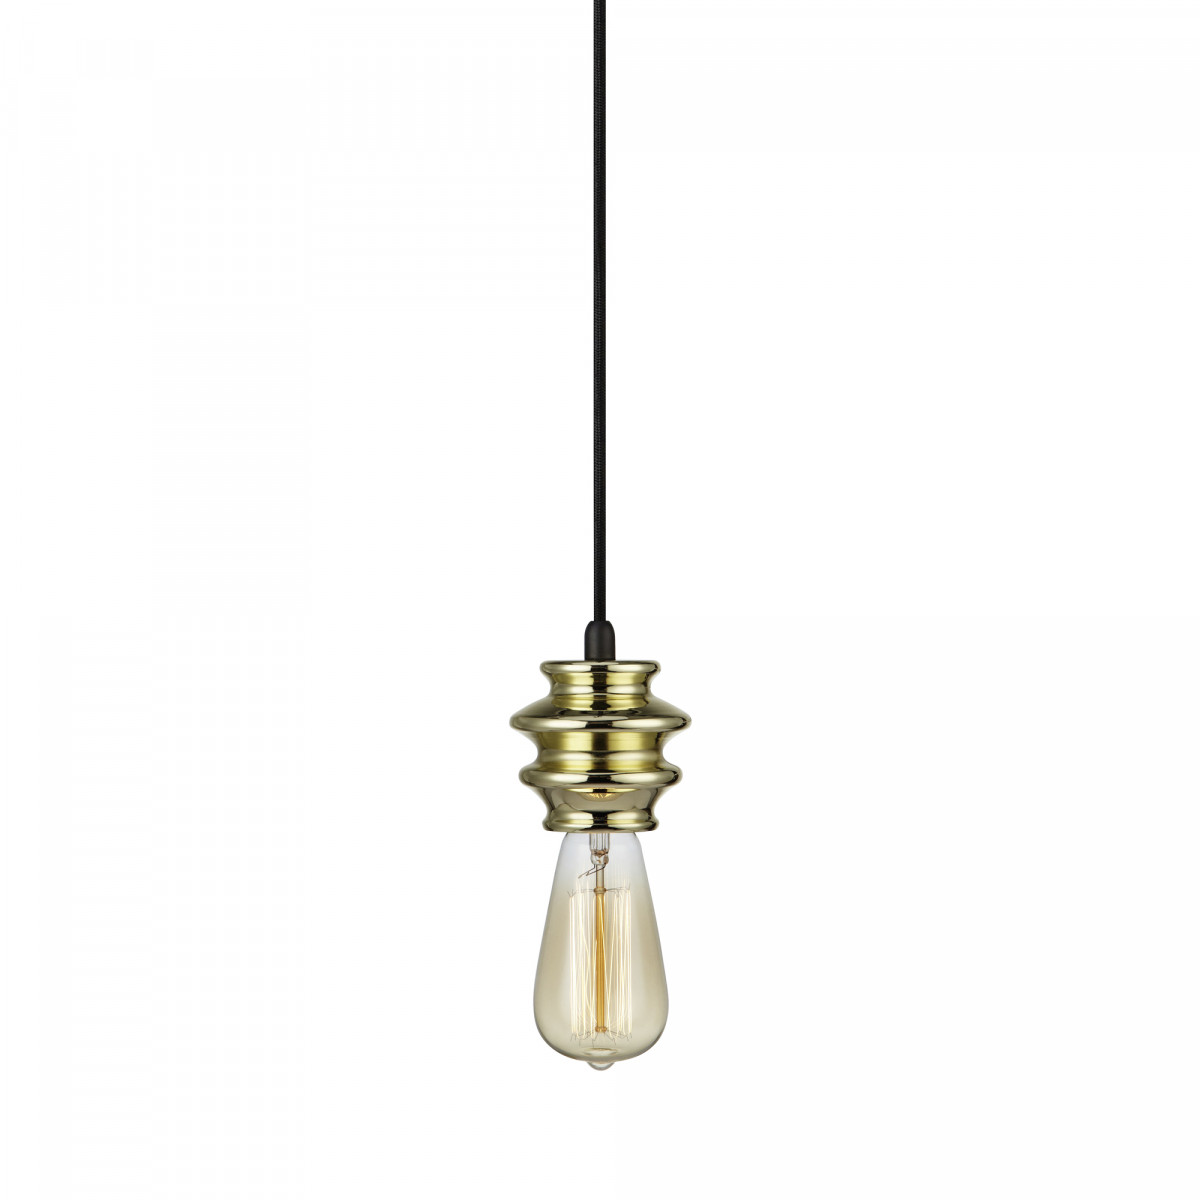 Hanglamp Fab 1-lichts messing